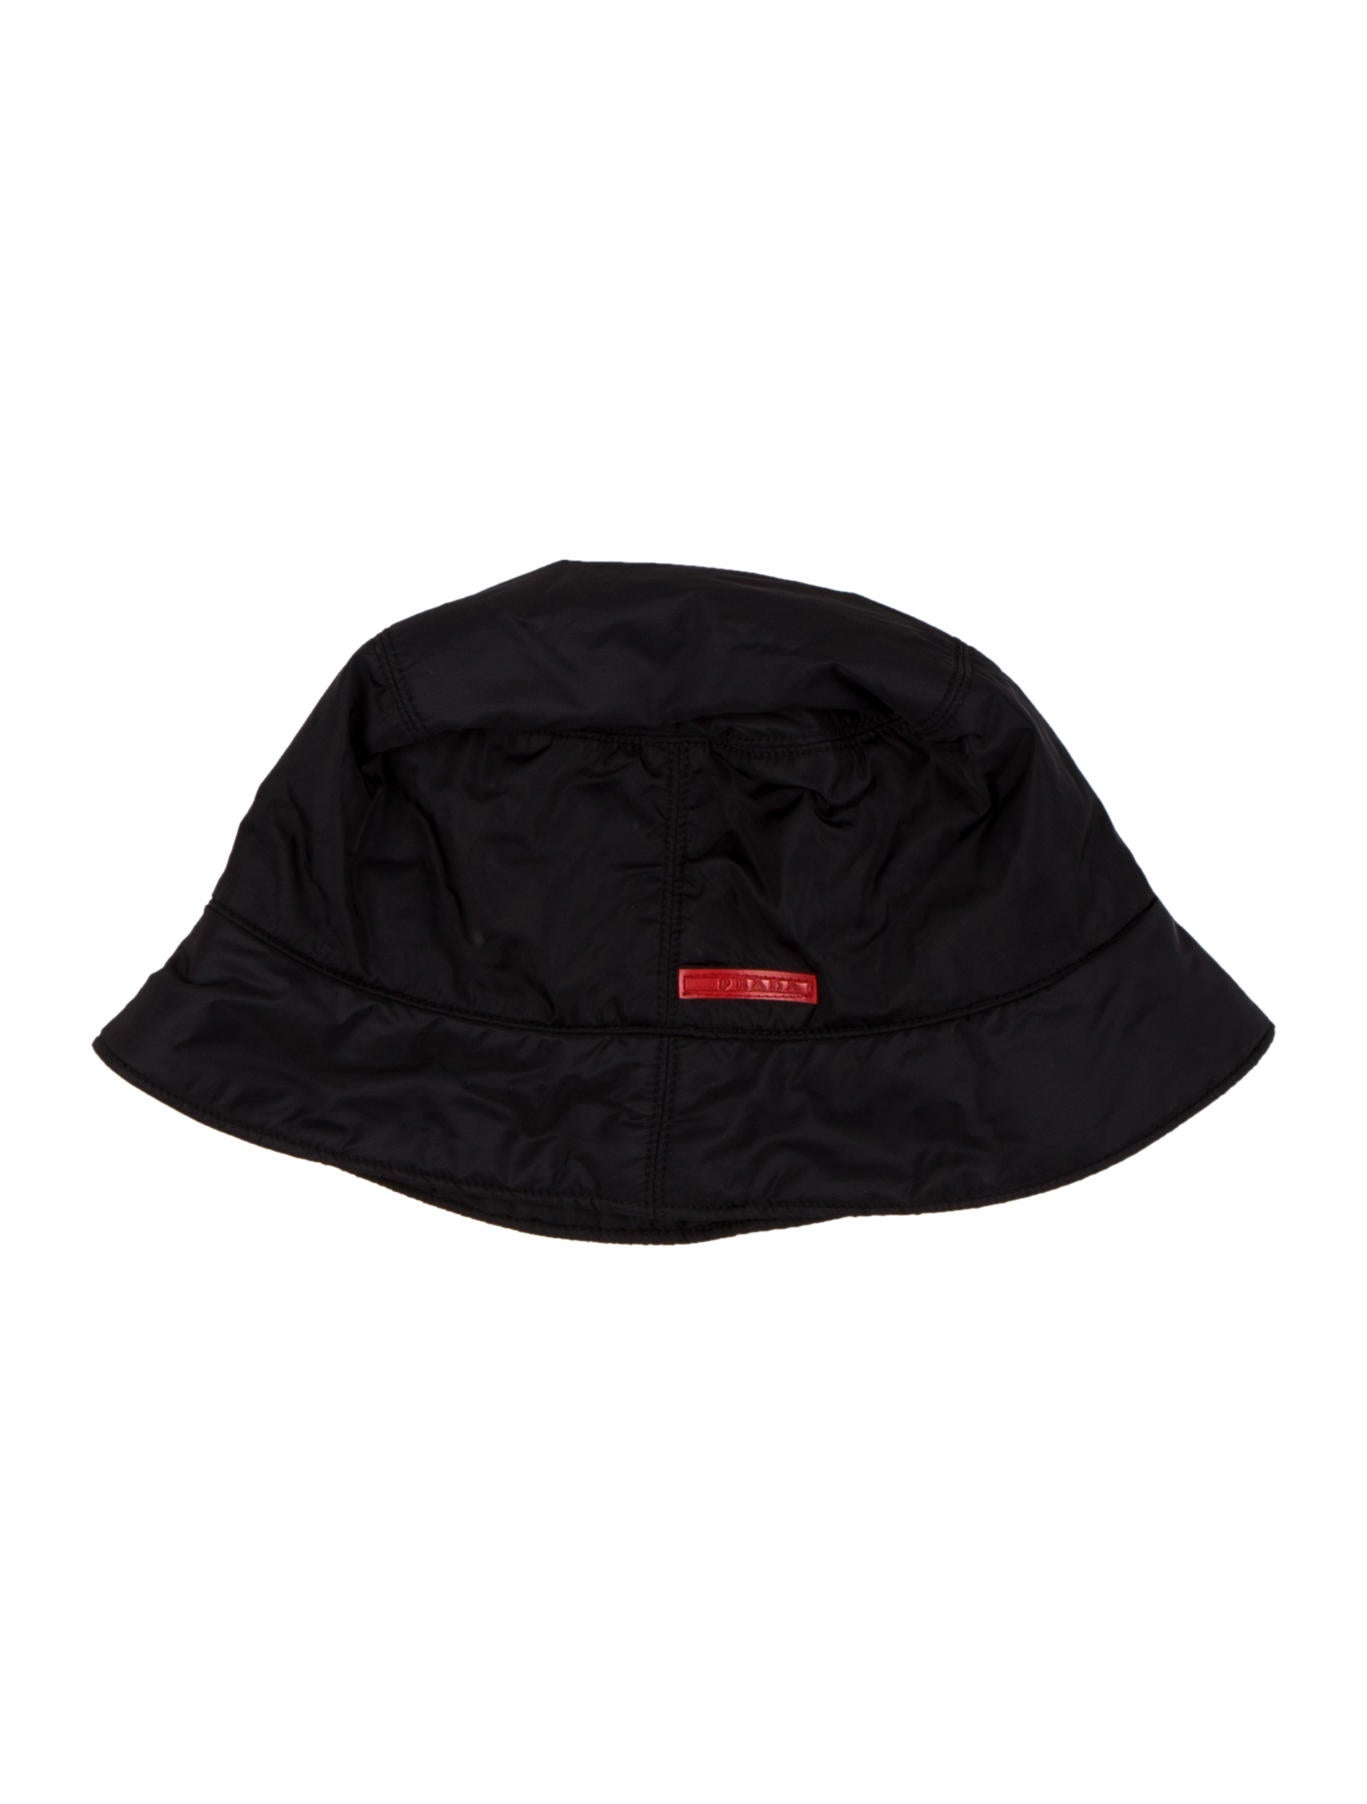 ffe99b105ff Prada Sport Nylon Bucket Hat - Accessories - WPR53494